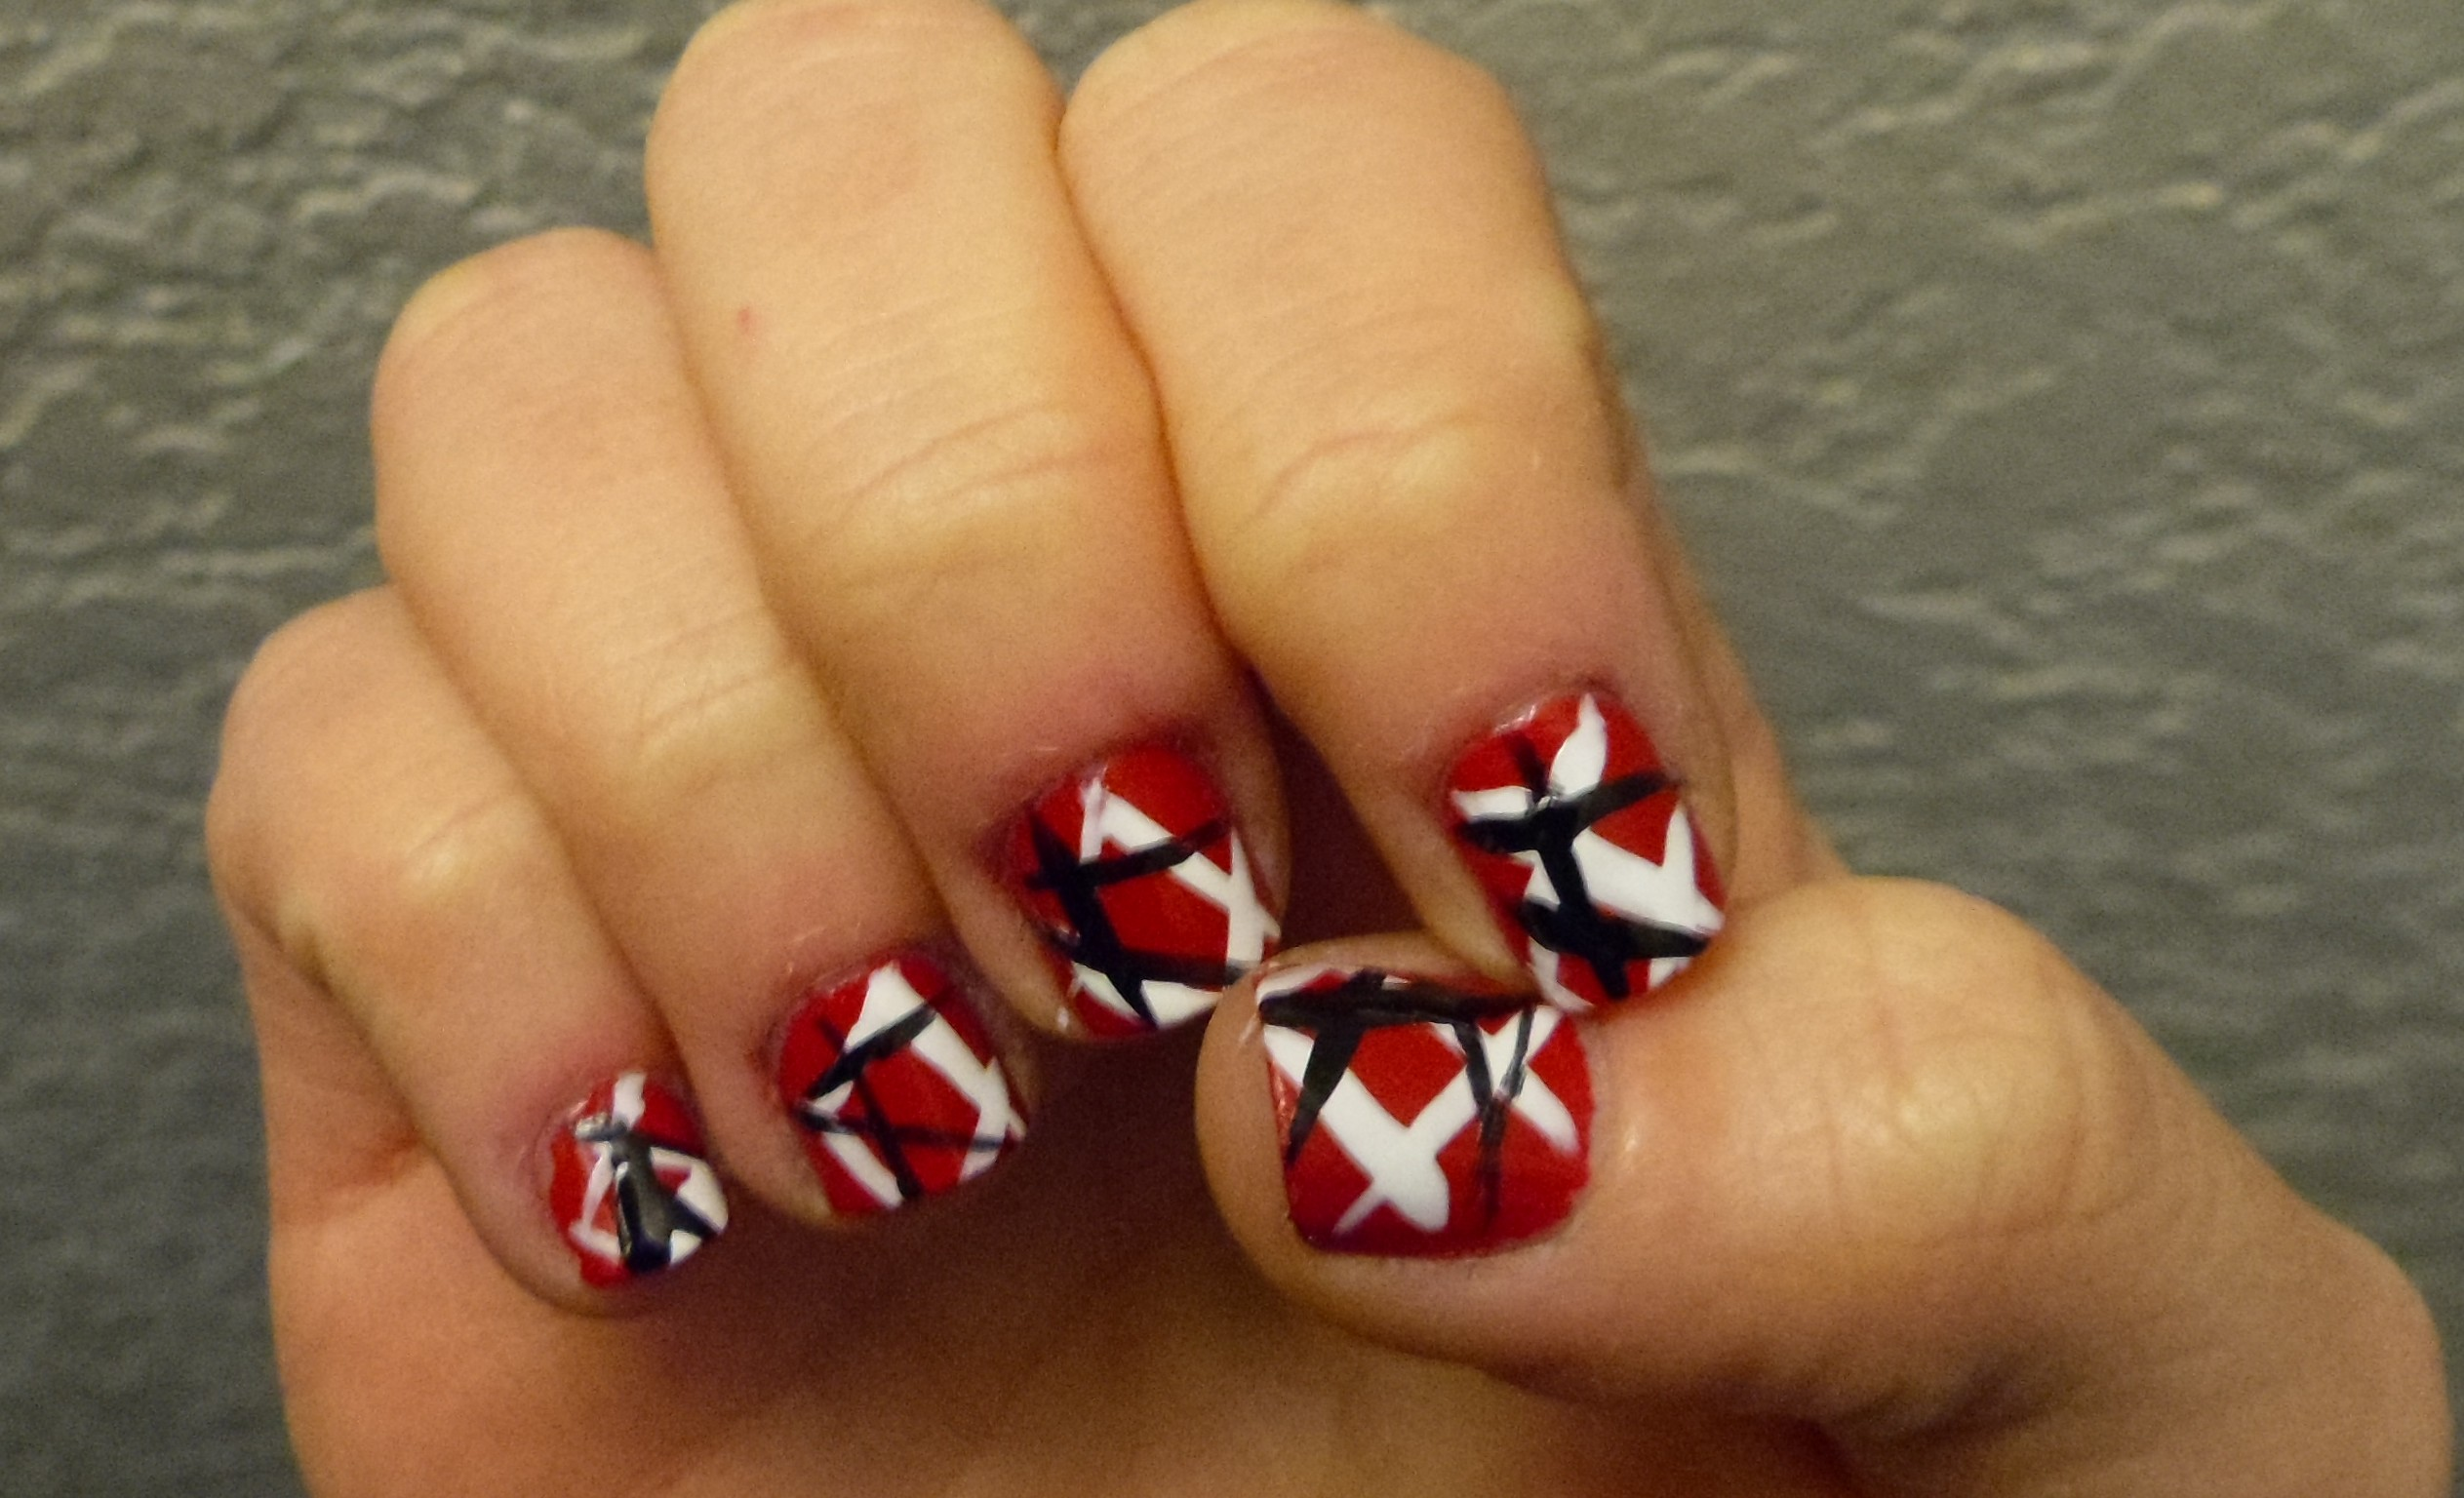 Van halen frankenstein design nails you can have it all van halen frankenstein design nails prinsesfo Gallery